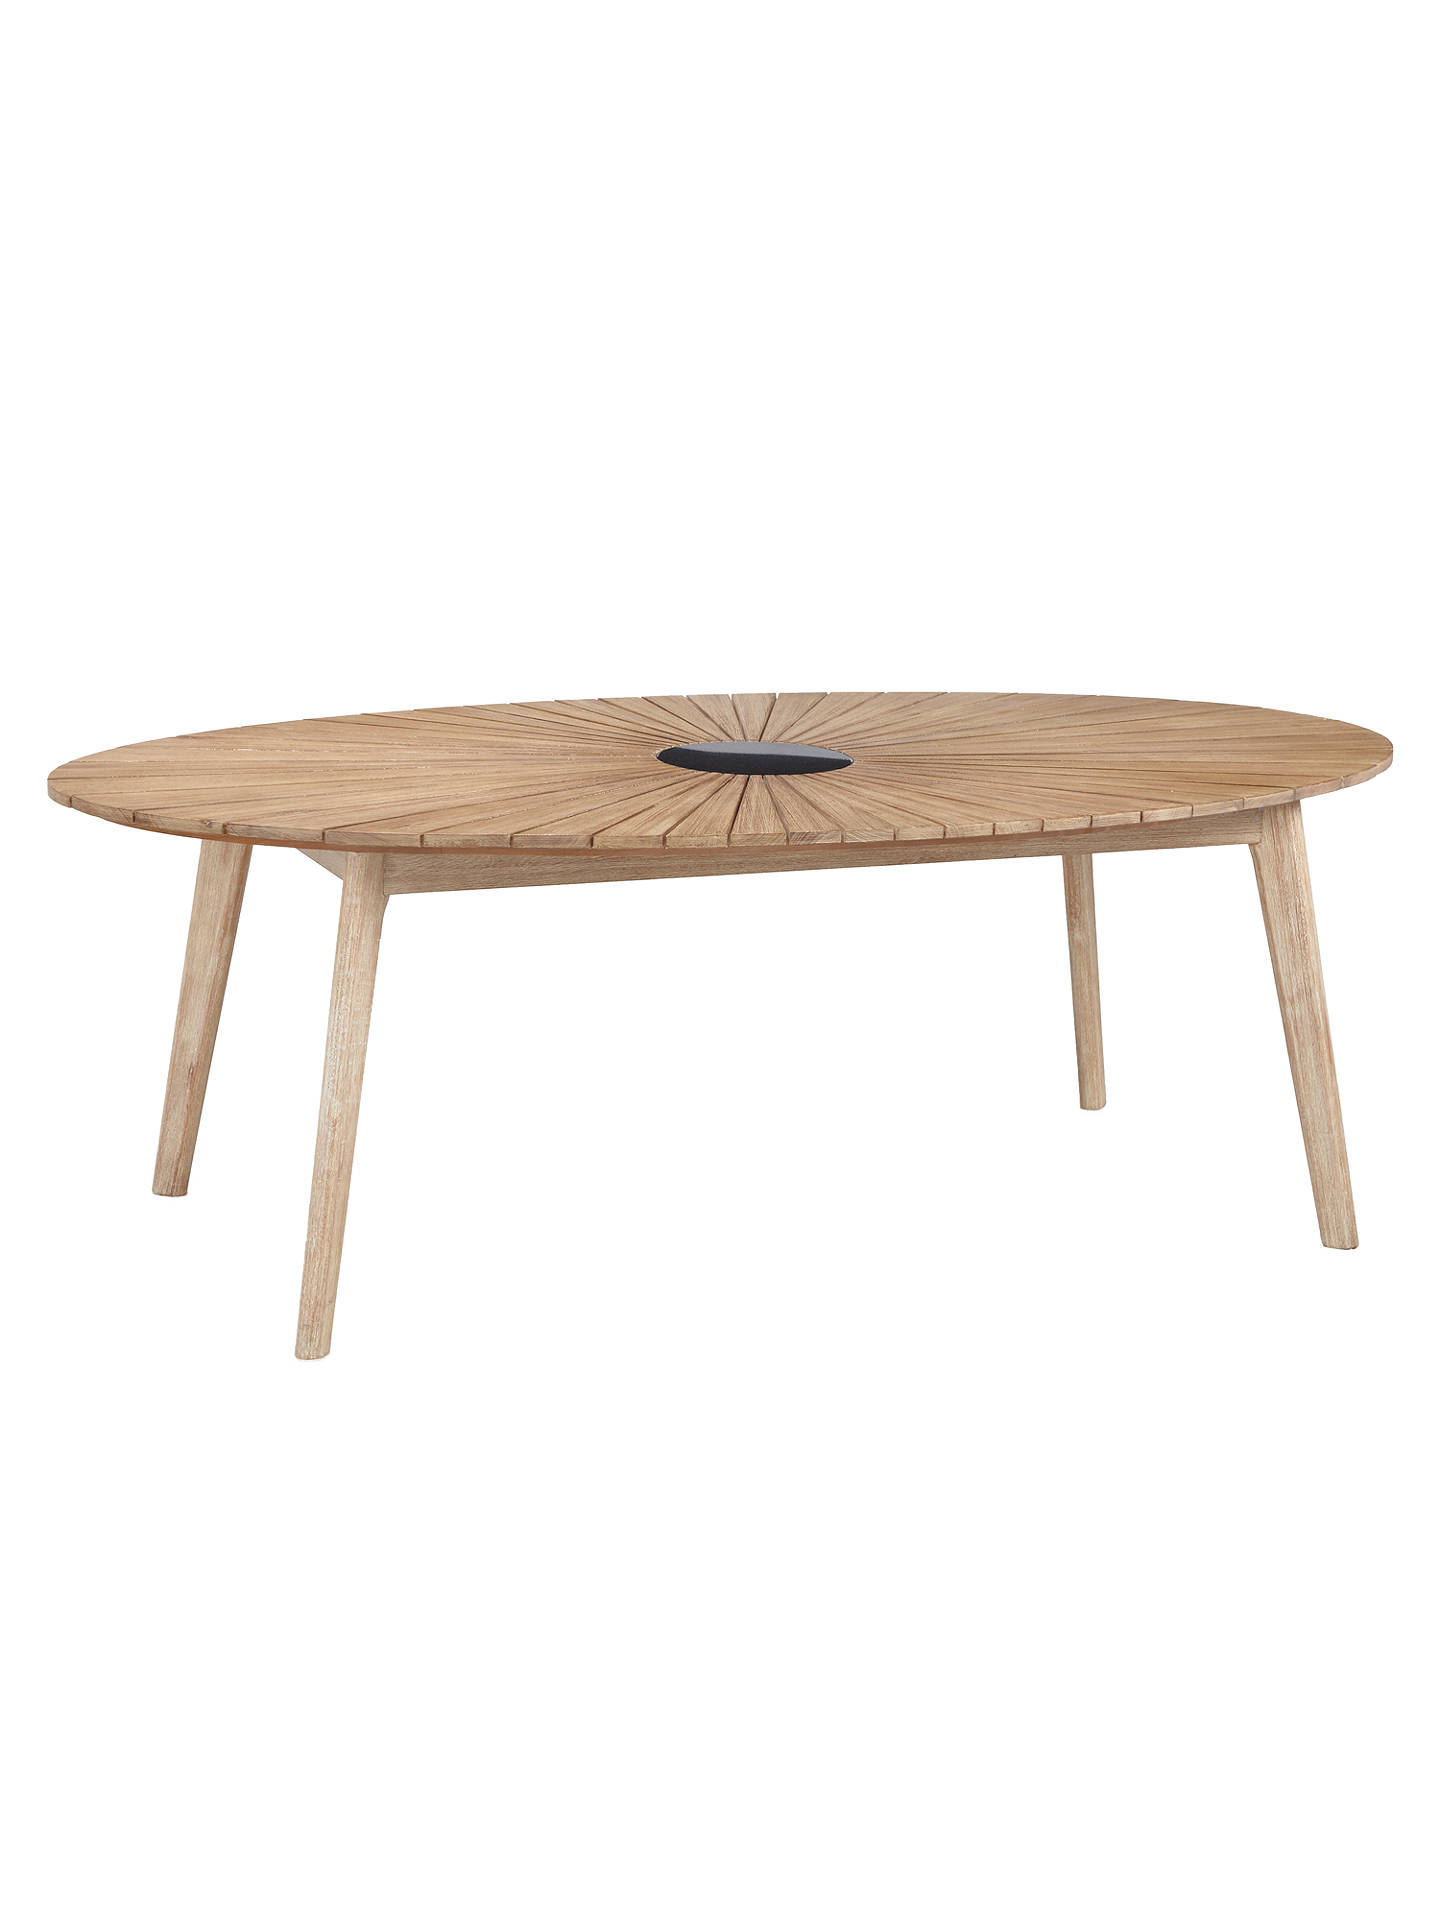 BuyJohn Lewis & Partners Sol 6 Seater Oval Garden Dining Table & Chairs Set, FSC-Certified (Eucalyptus), Natural Online at johnlewis.com